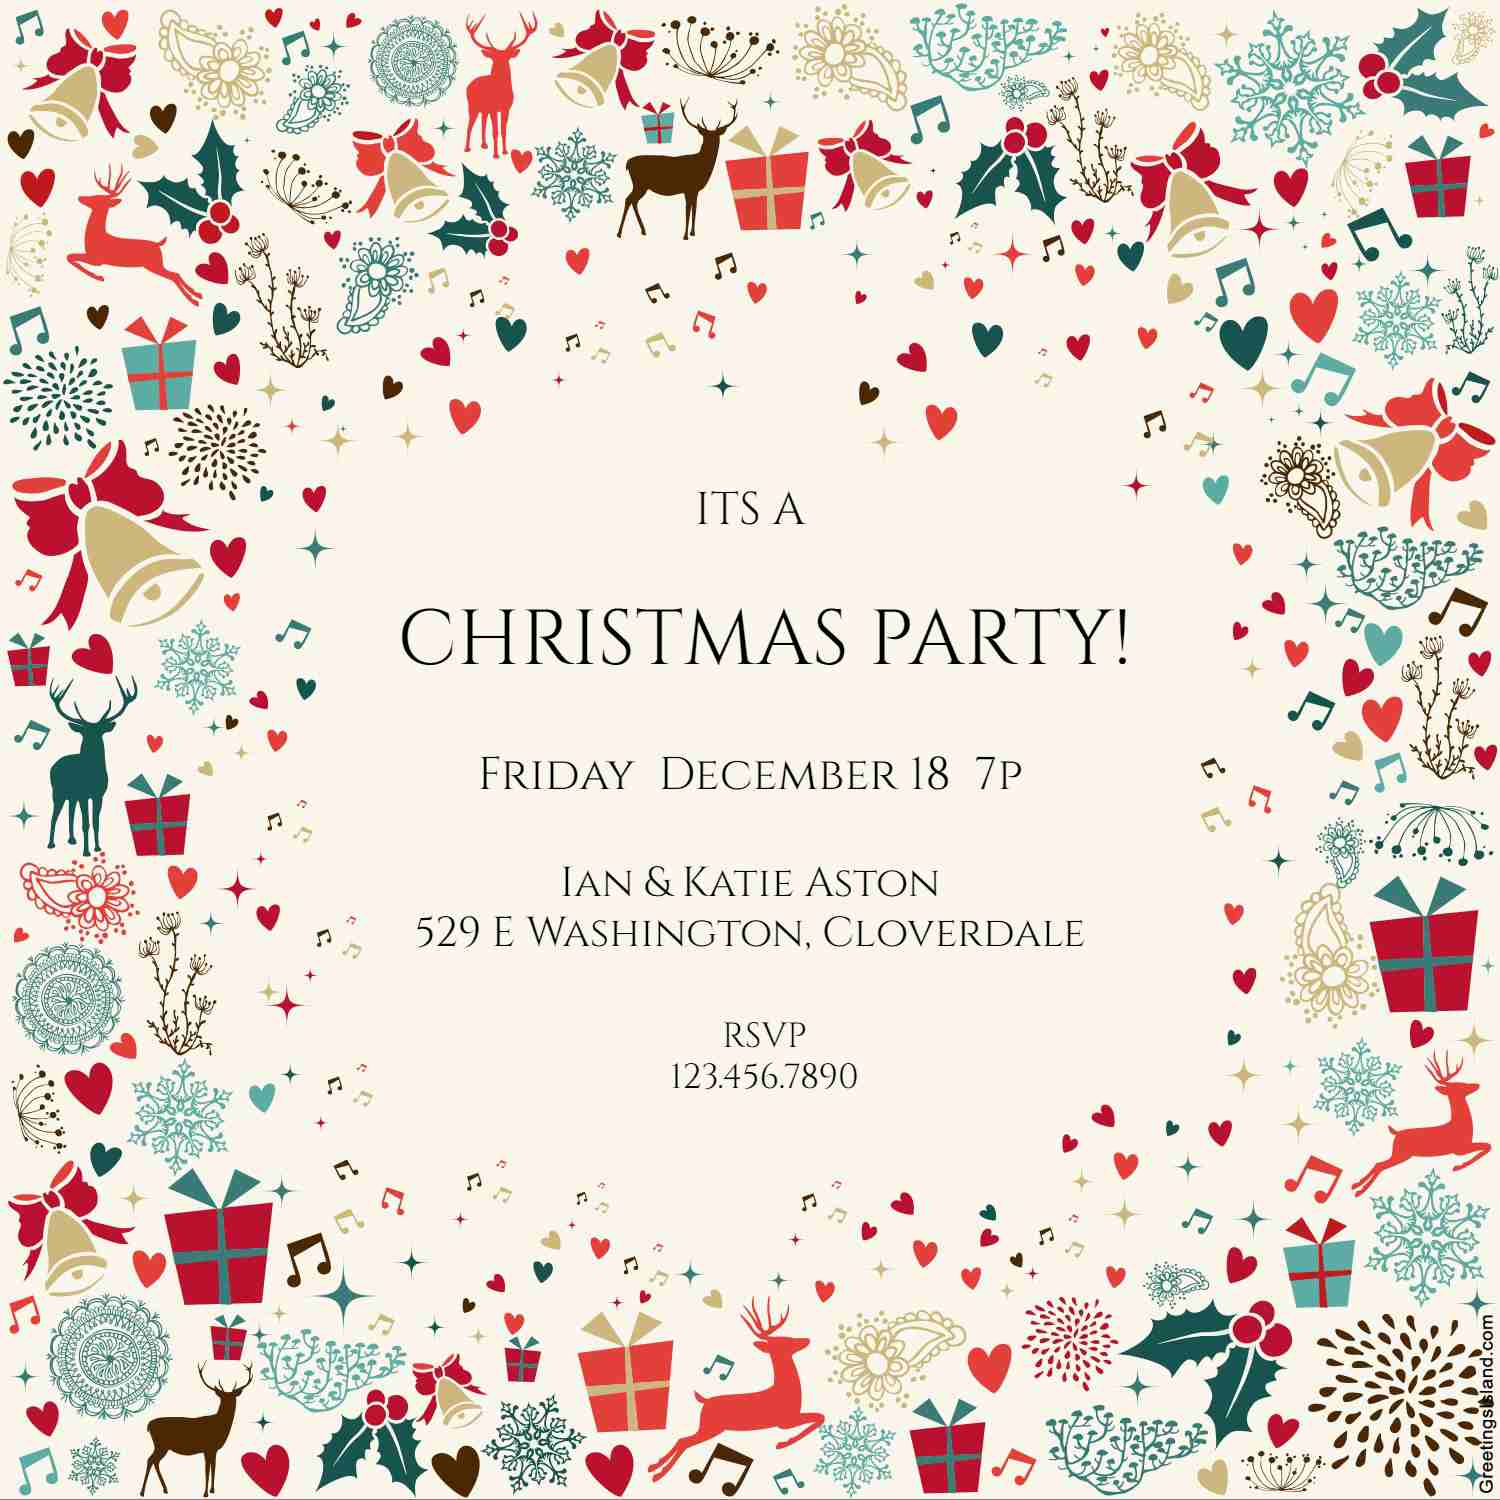 15 free christmas party invitations that you can print kristyandbryce Gallery